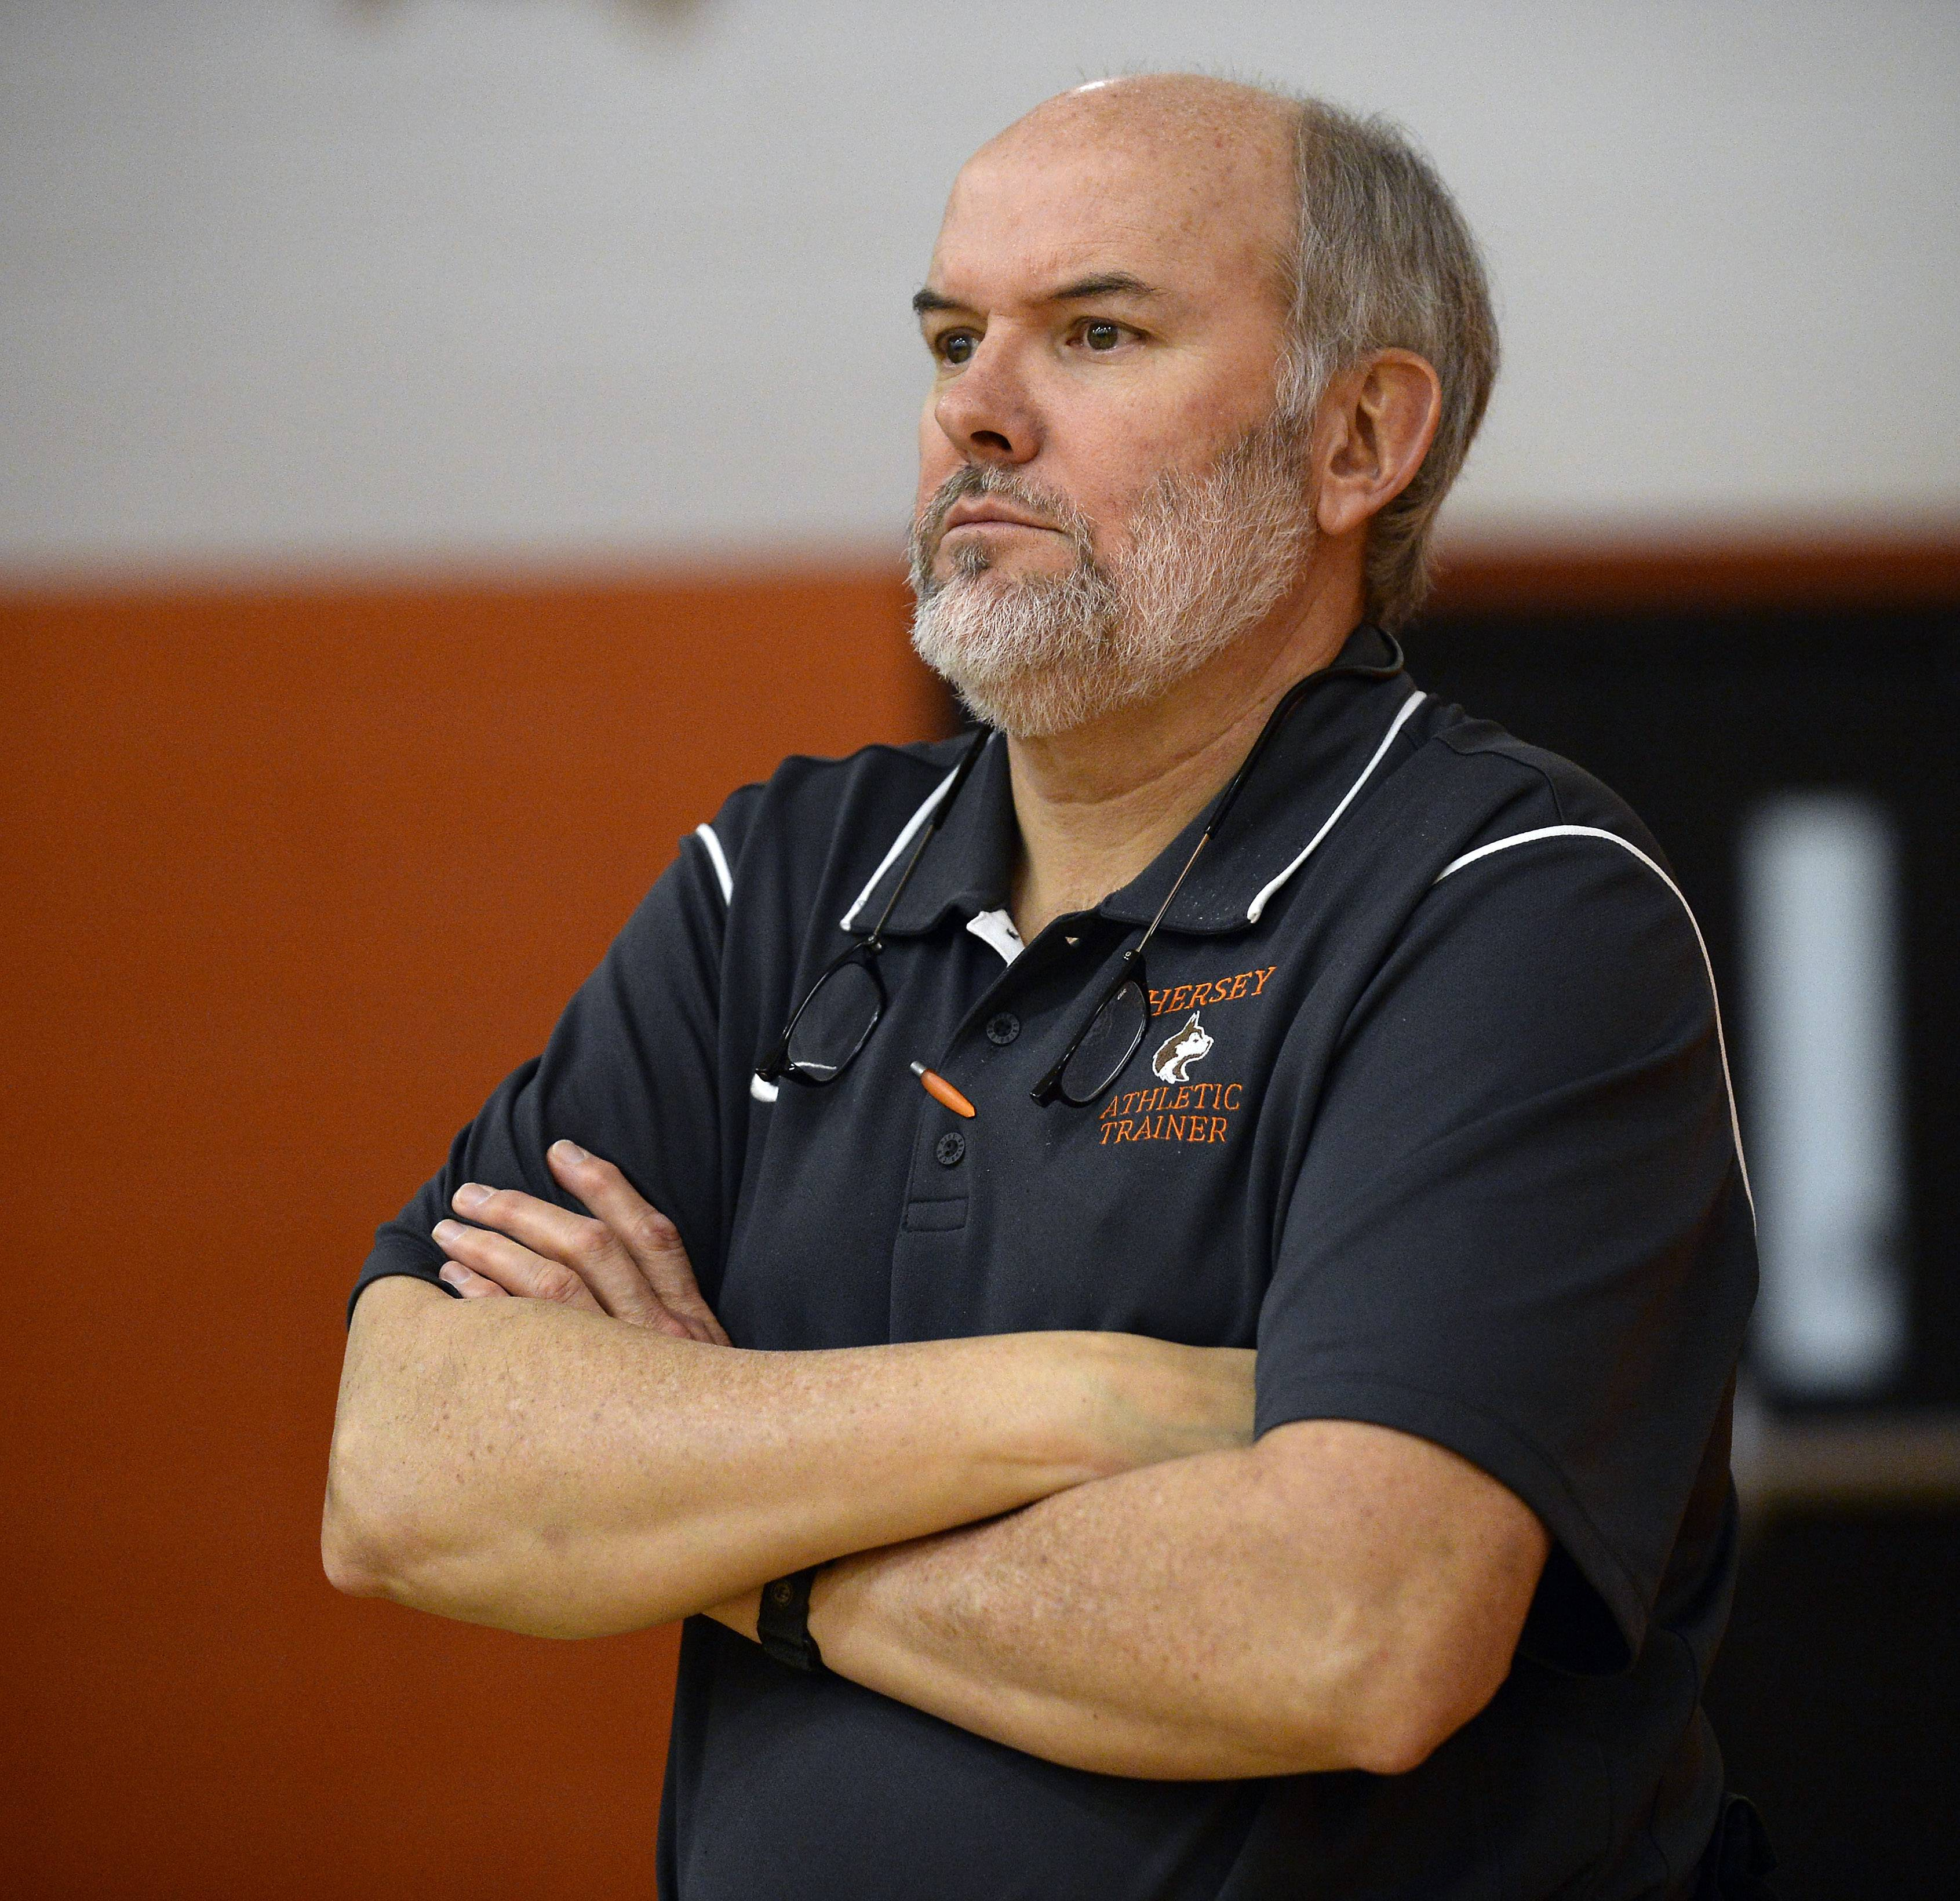 Hilmer in line for recognition at Hersey after 36 years of service